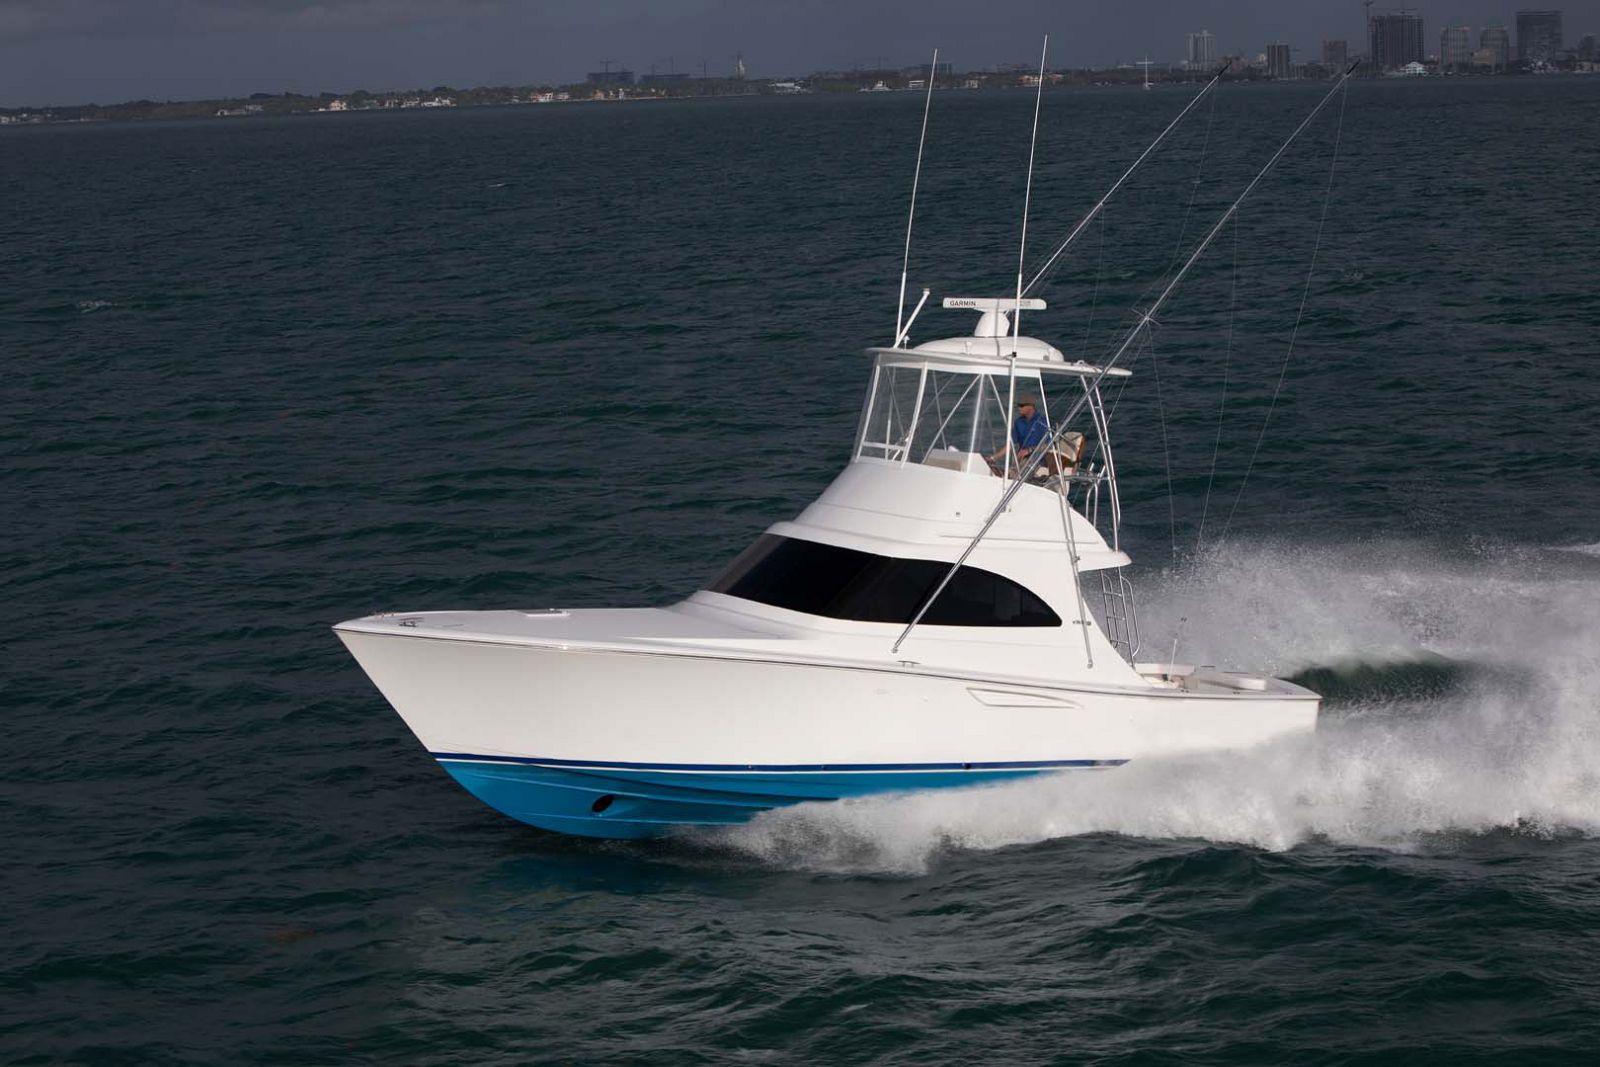 Viking 38 Billfish Main Image